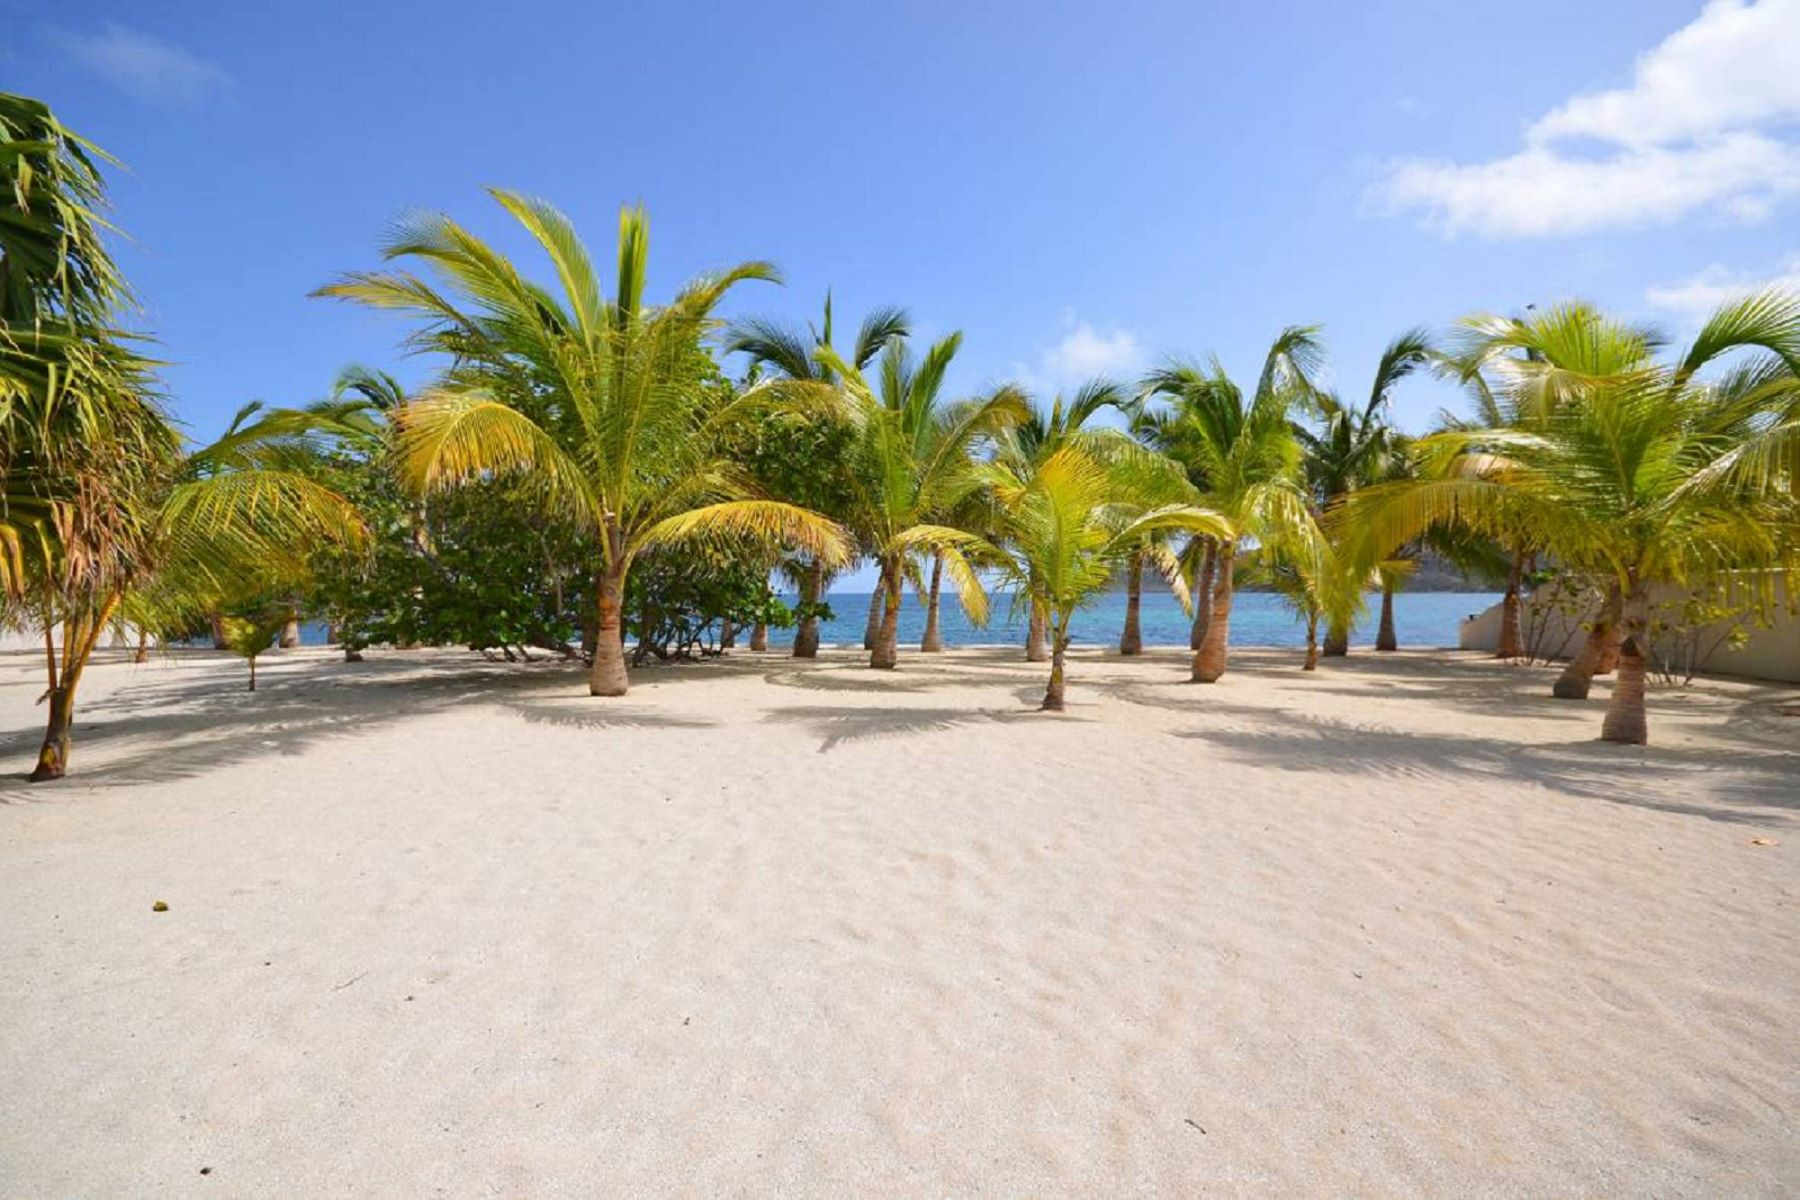 Land for Sale at Terrain Lorient Beach Other St. Barthelemy, Cities In St. Barthelemy St. Barthelemy